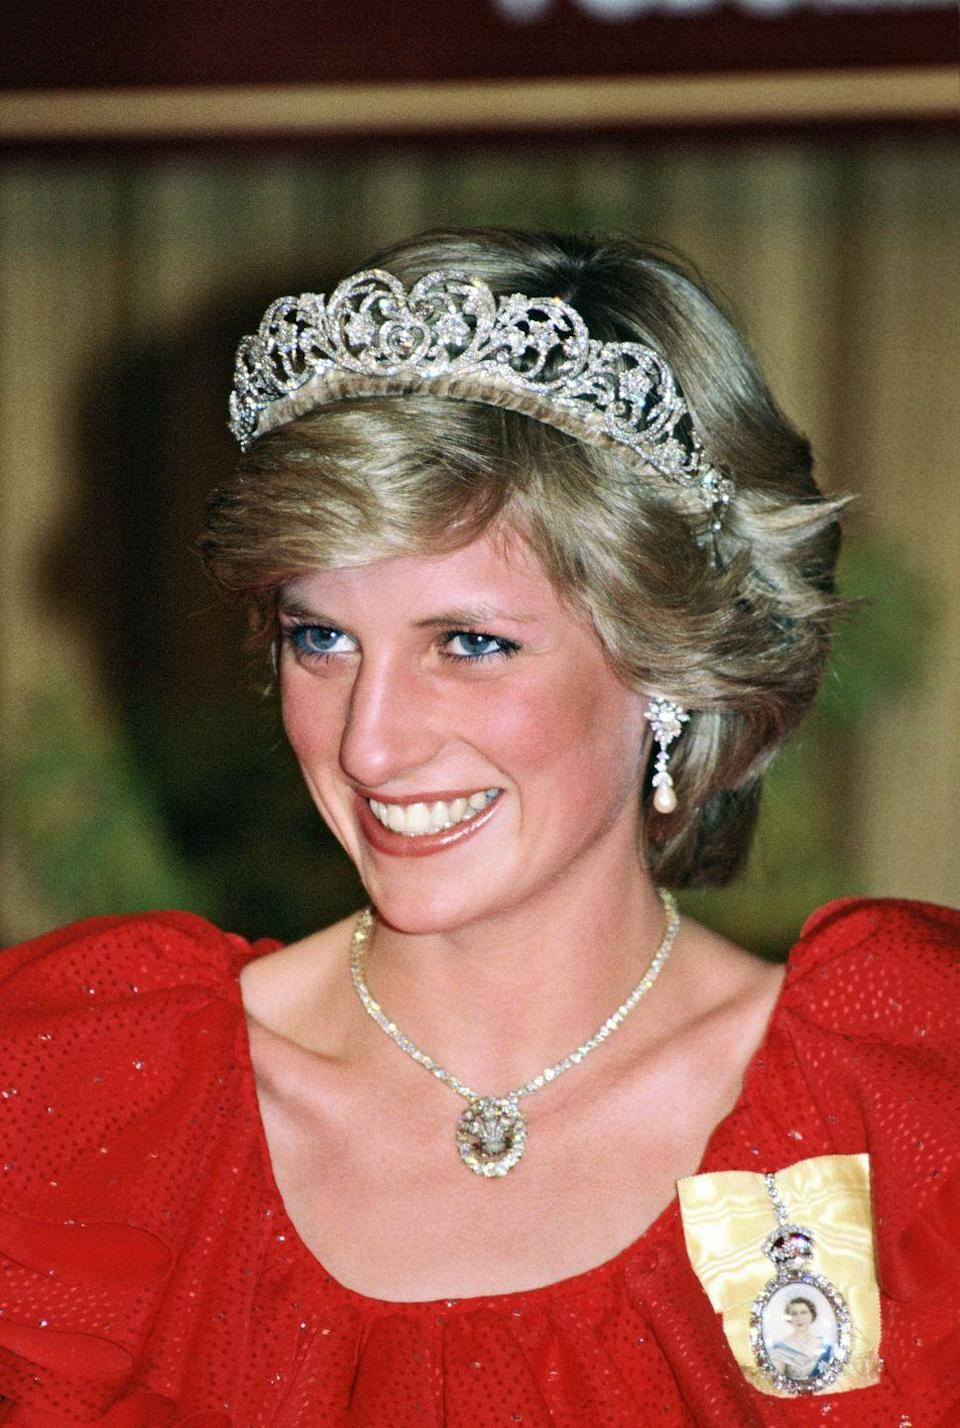 "<p>The tiara was originally given to her grandmother in 1919, with additional pieces added in the 1930s, according to <a href=""https://people.com/royals/princess-dianas-spencer-tiara-history-and-photos/"" rel=""nofollow noopener"" target=""_blank"" data-ylk=""slk:People"" class=""link rapid-noclick-resp""><em>People</em></a>. Both of Diana's sisters (and her sister-in-law) wore the tiara at their own weddings, making it a tradition to wear this family heirloom on one's wedding day. </p>"